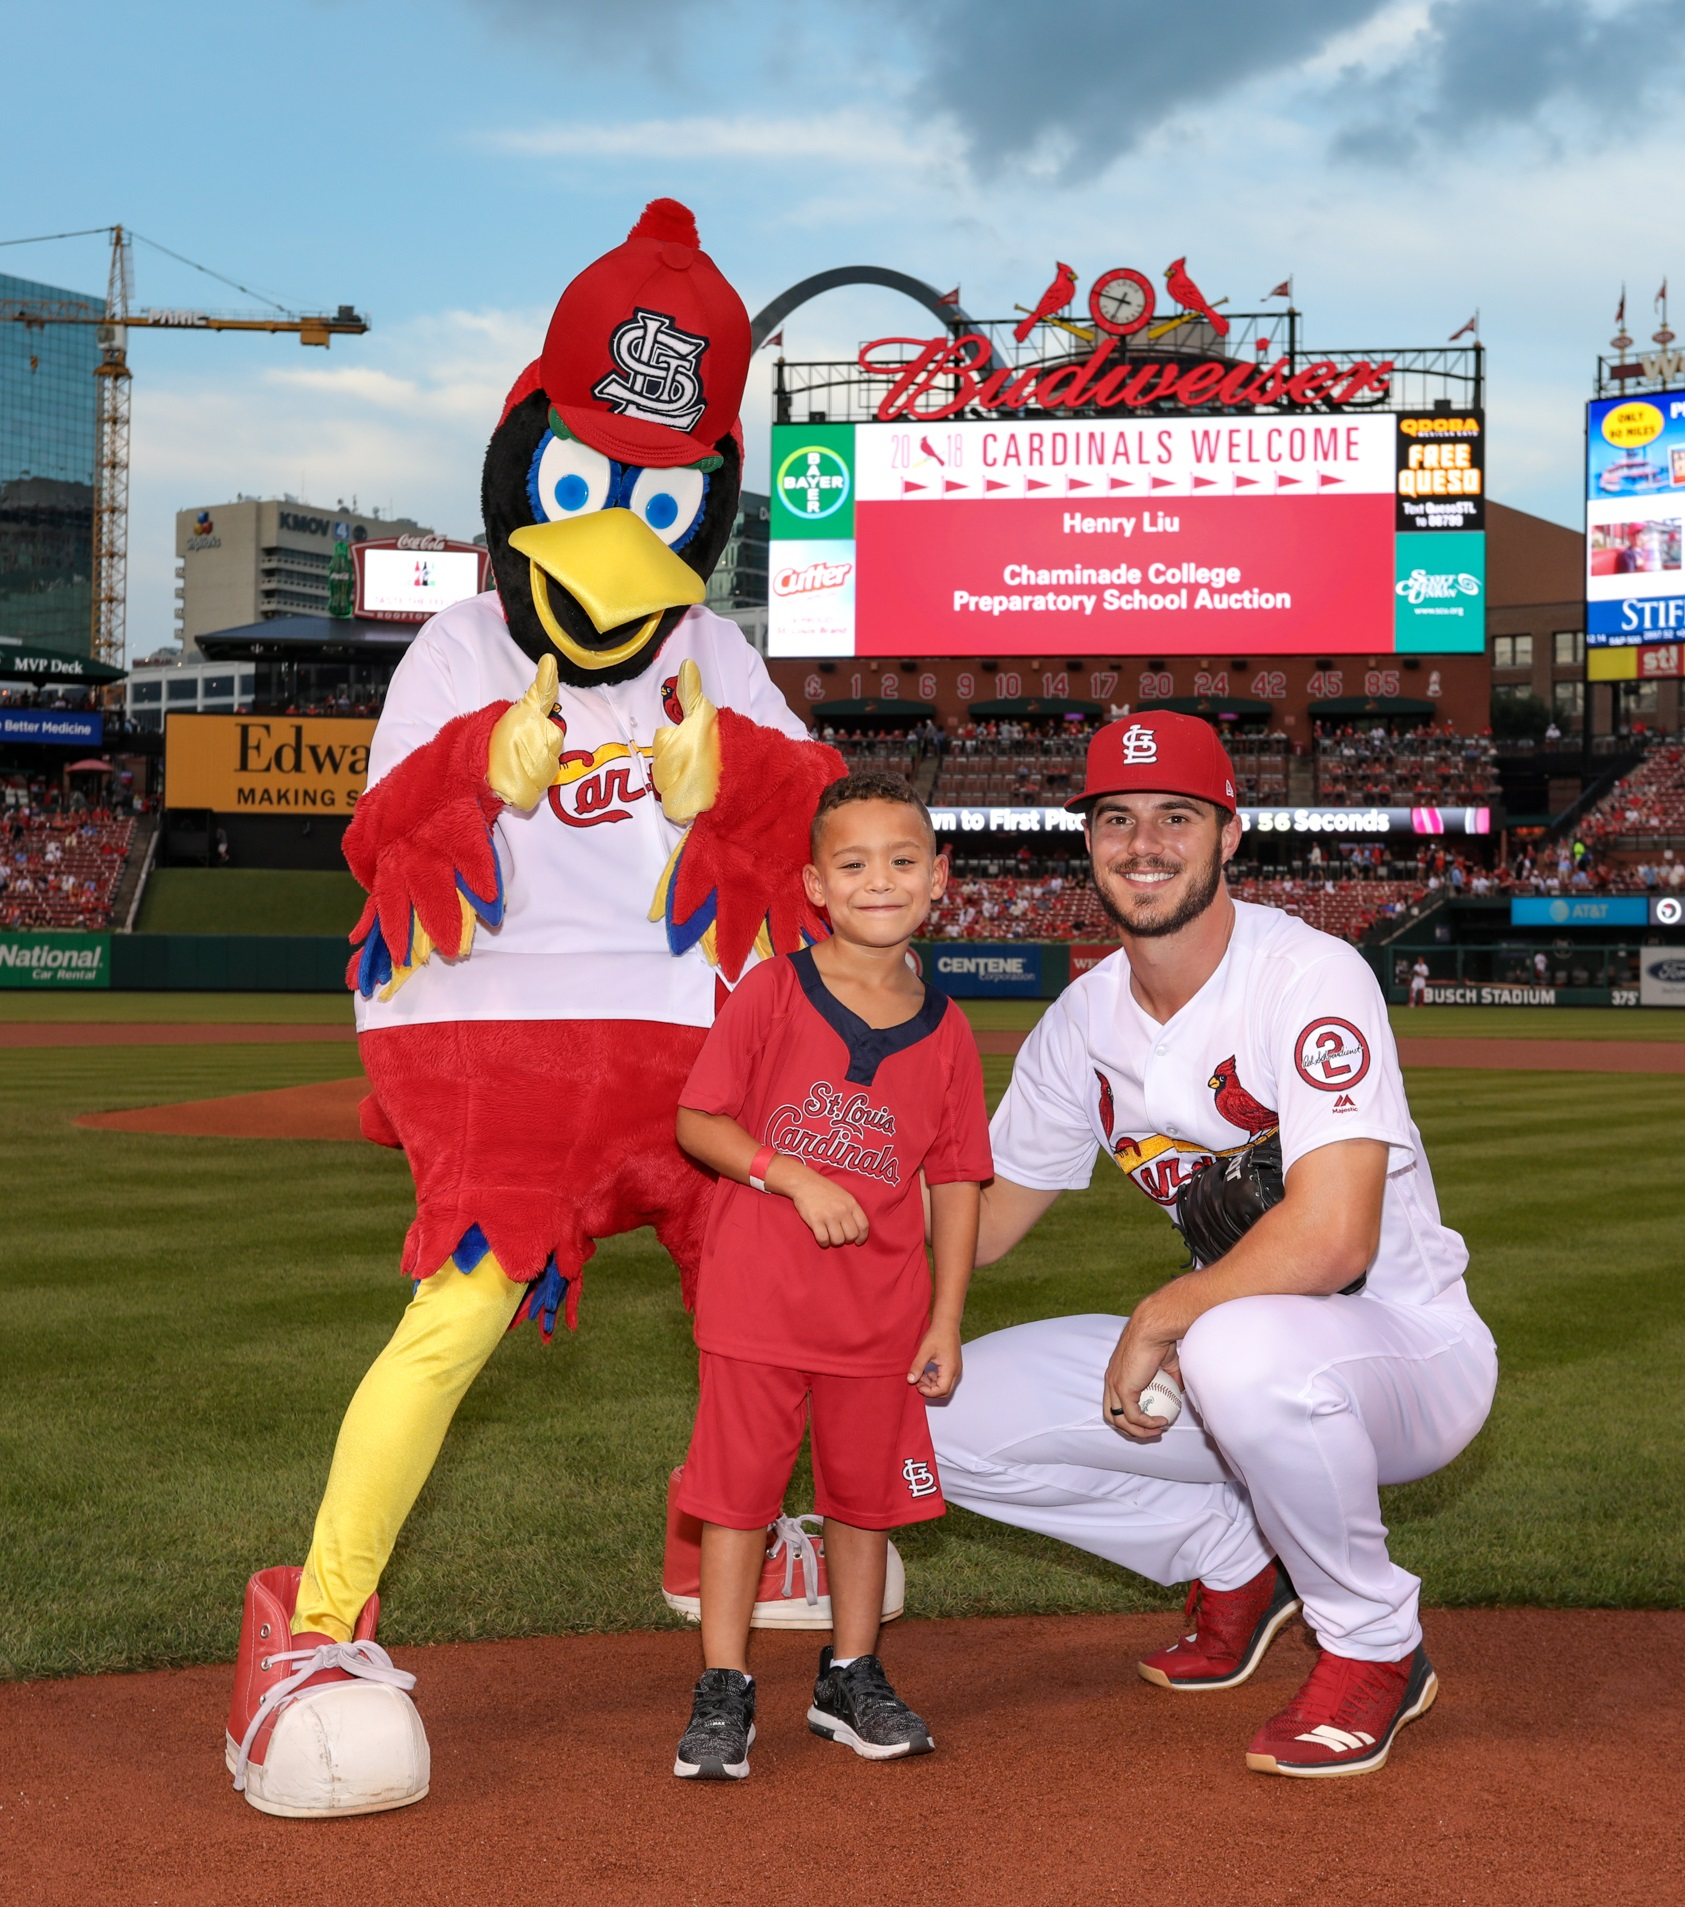 Go to Bat for Kids 2019: The Tradition Continues! | Catholic